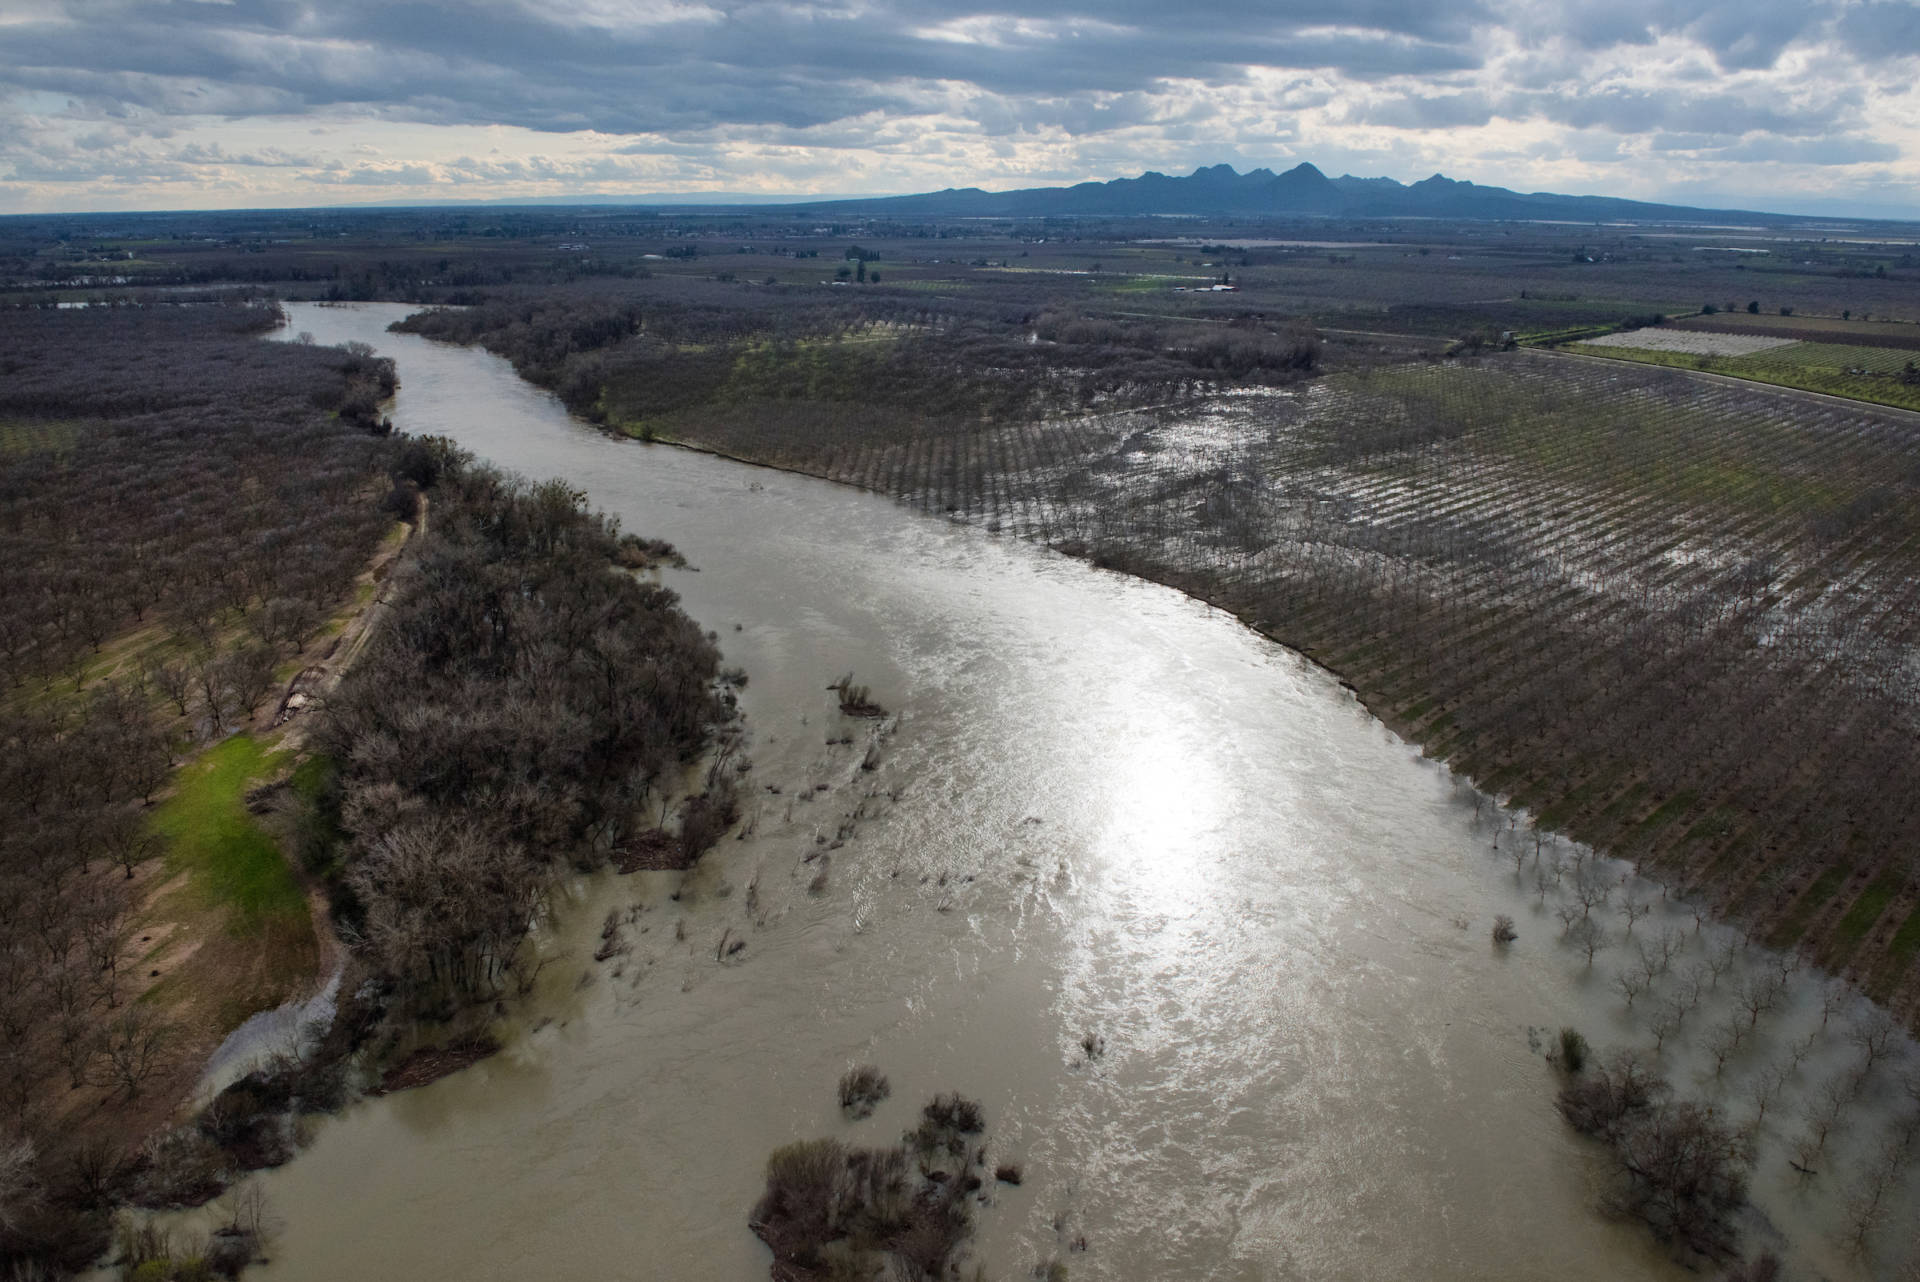 An aerial view looking at the Feather River downstream from Oroville the day before the Department of Water Resources dramatically reduced flows in late February 2017. Kelly M. Grow/California Department of Water Resources